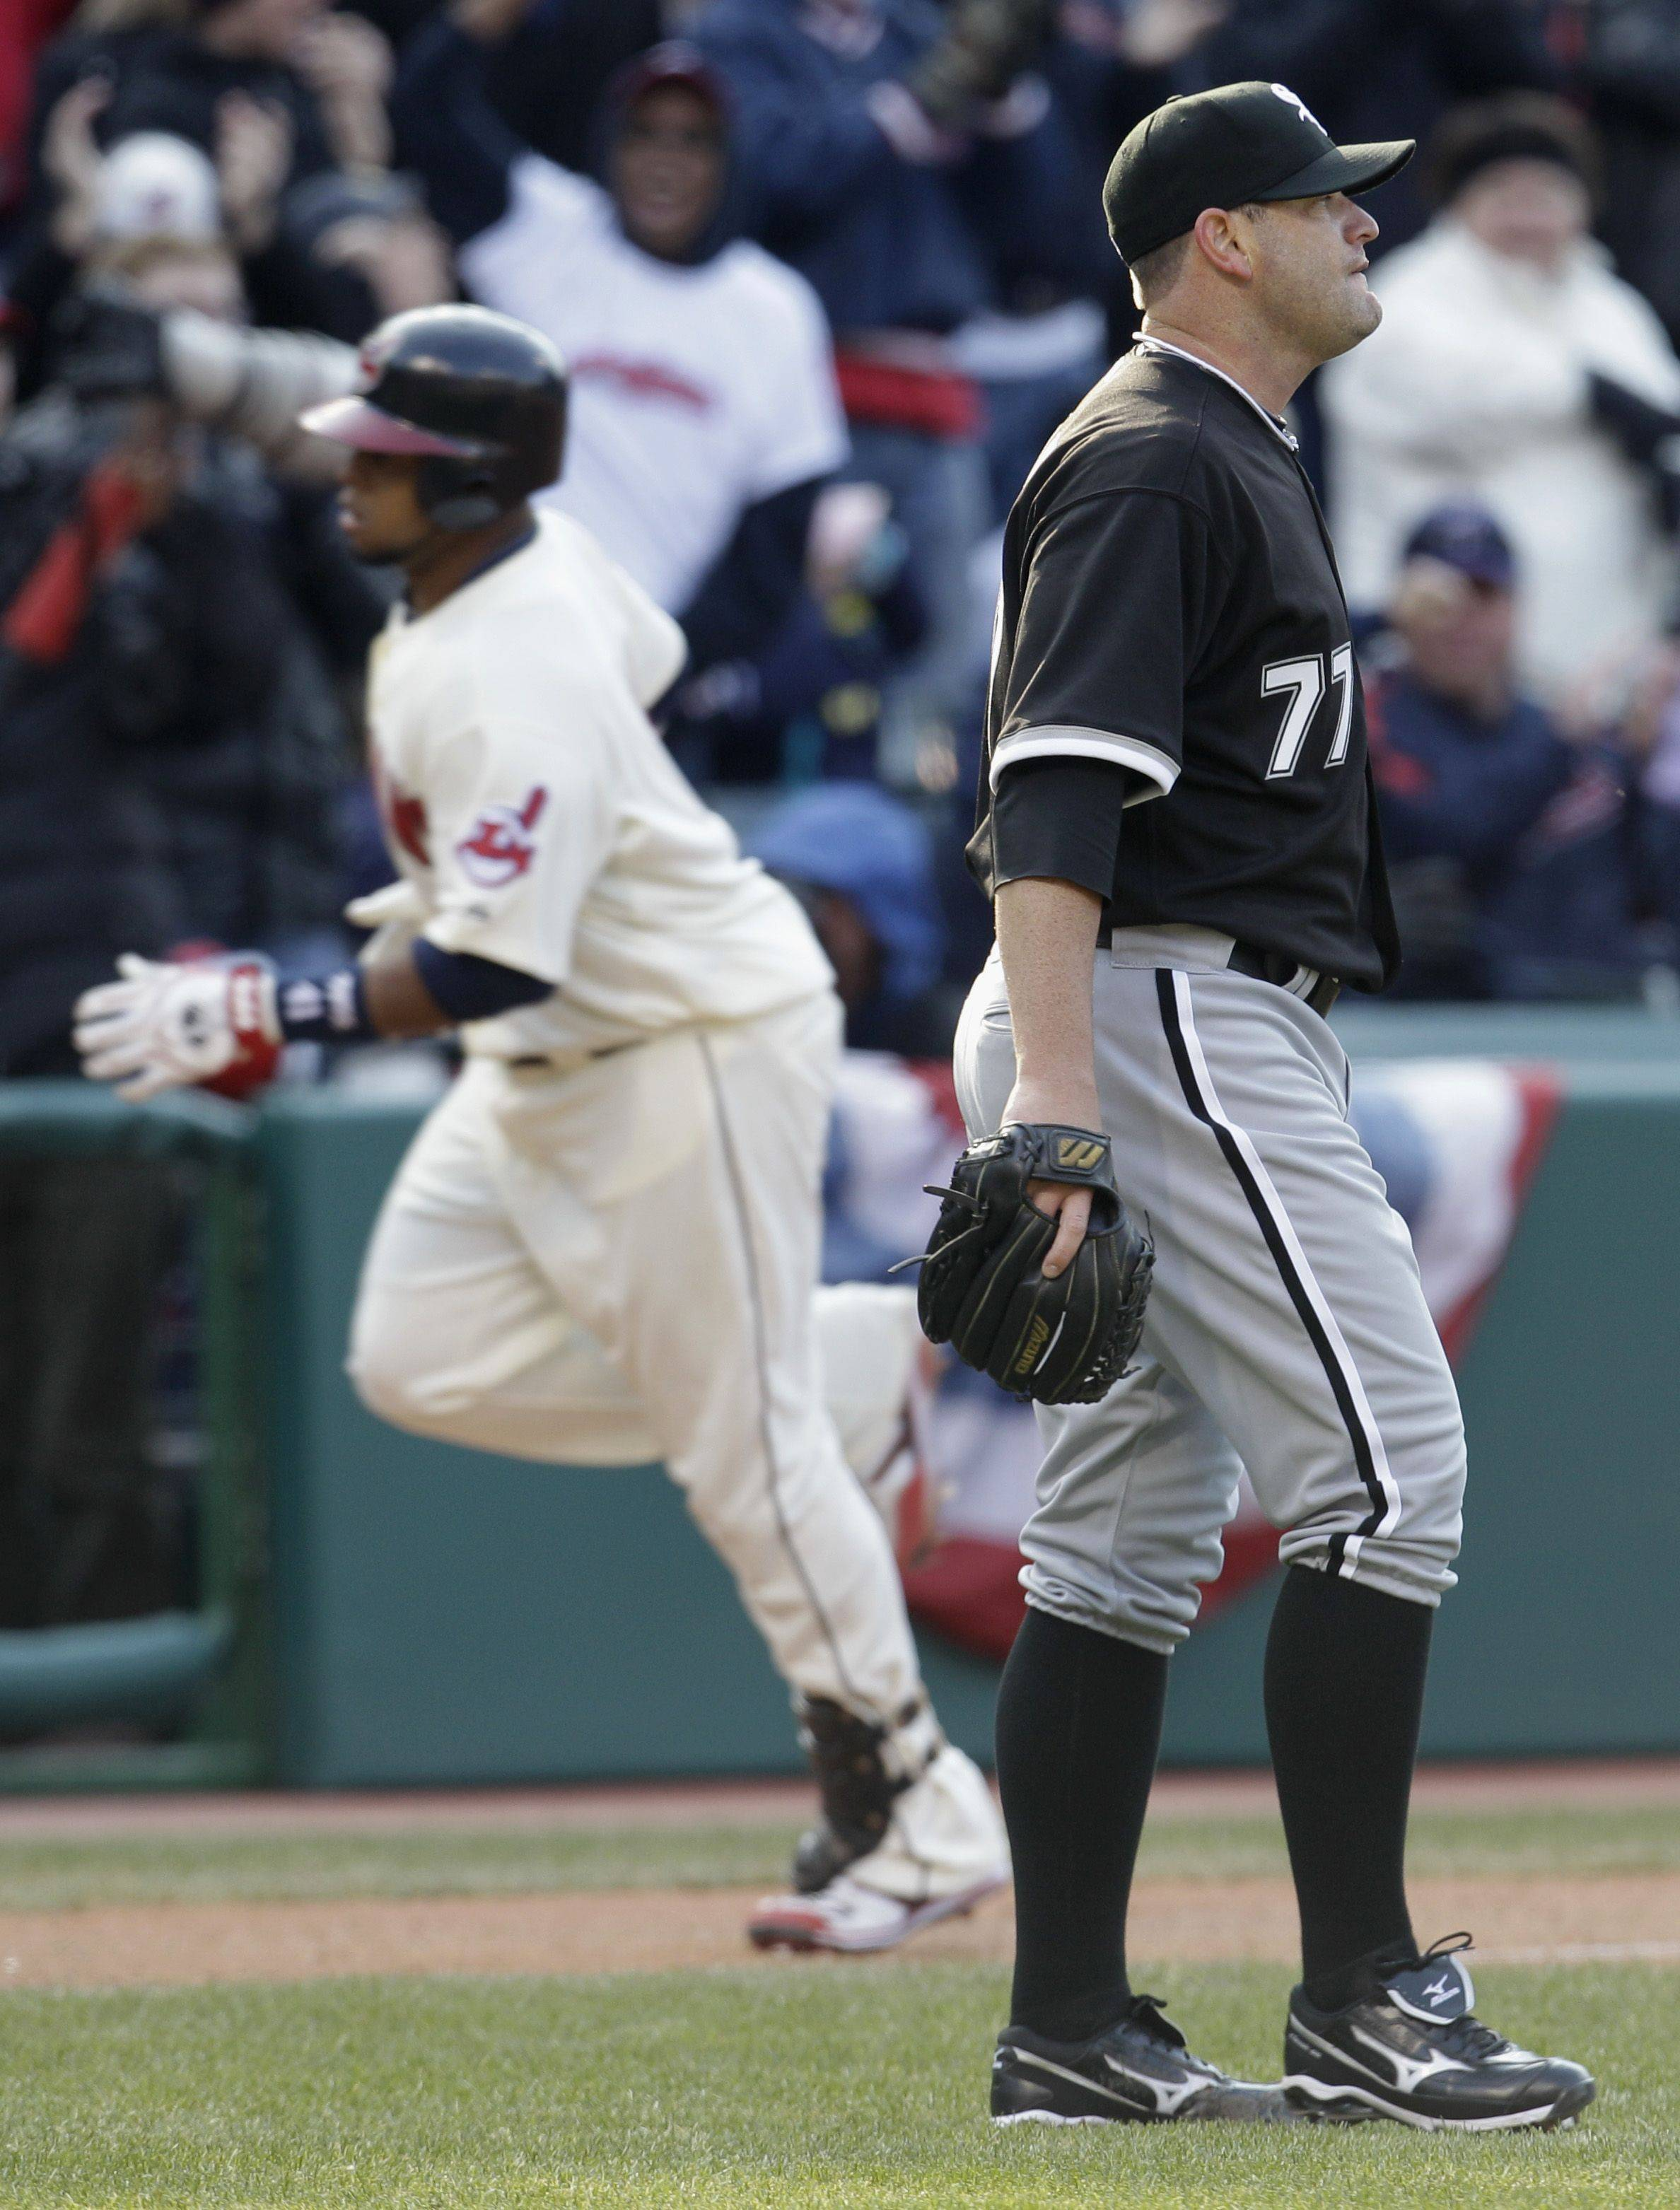 Chicago White Sox pitcher Will Ohman, right, reacts as Cleveland Indians catcher Carlos Santana runs the bases after Santana hit a two-run home run in the seventh inning in an opening day baseball game on Friday, April 1, 2011, in Cleveland. Asdrubal Cabrera also scored.